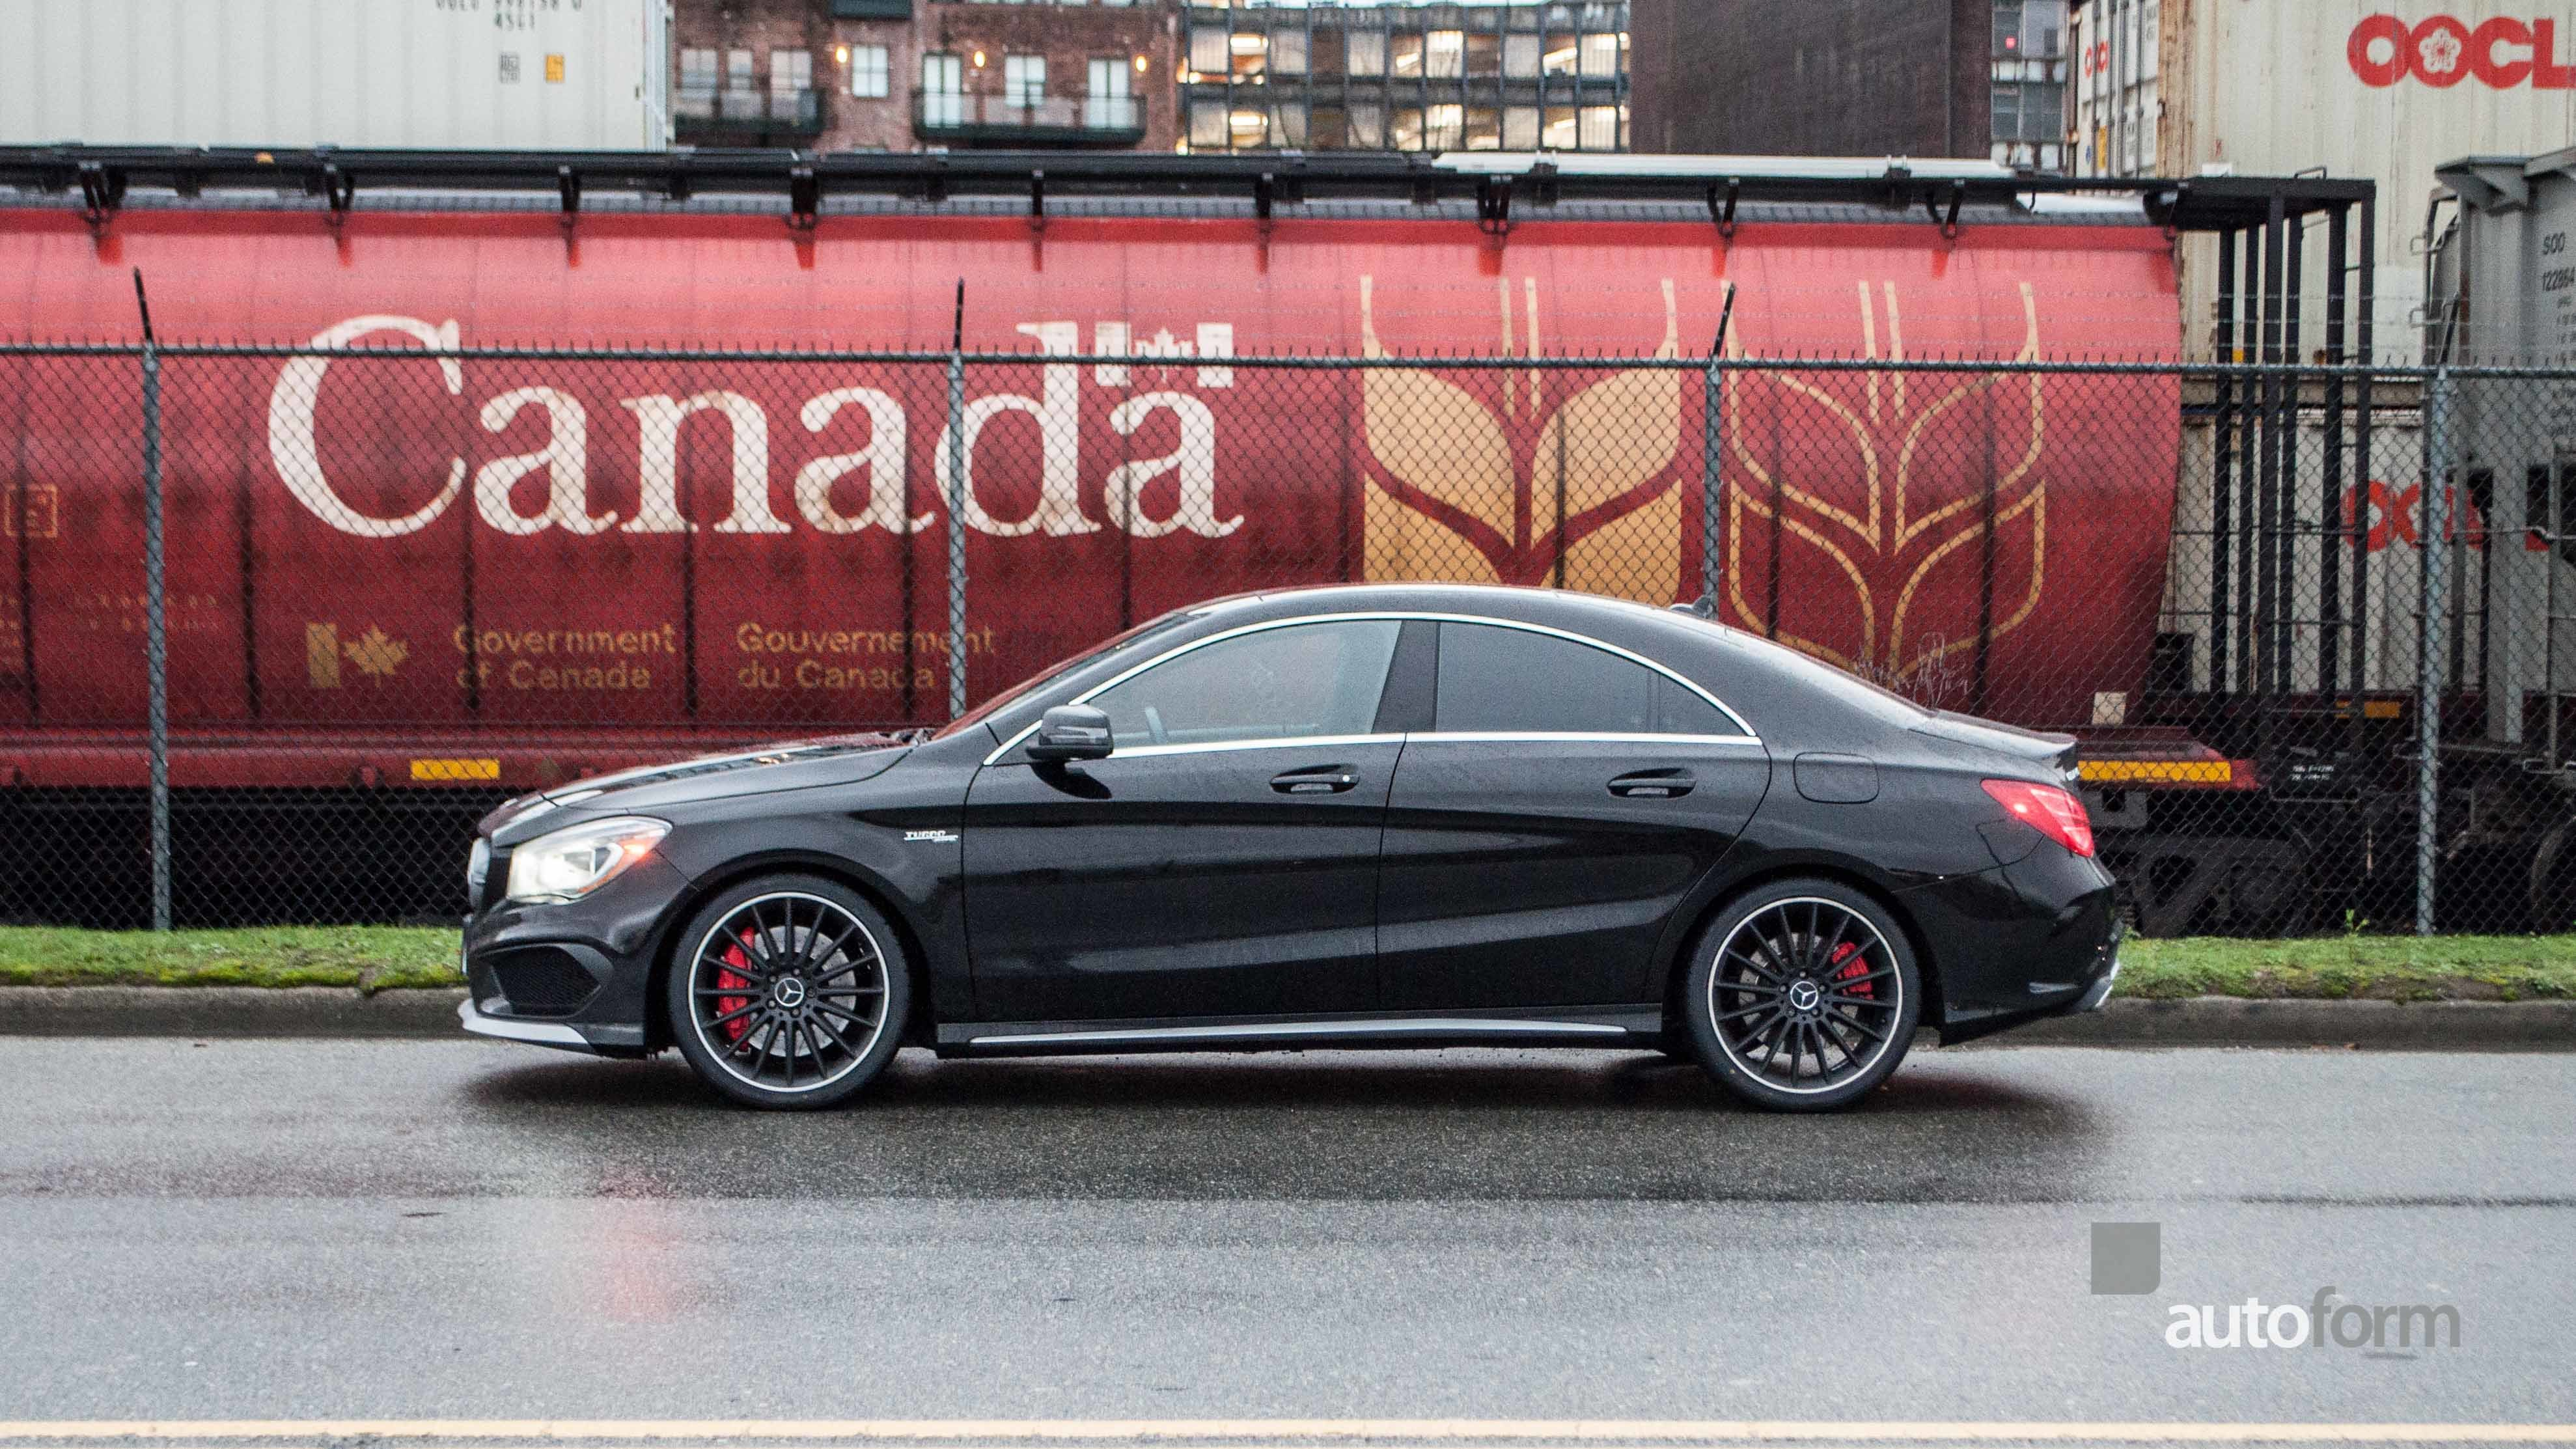 2014 mercedes benz cla45 amg 4matic autoform for 2014 mercedes benz cla45 amg 4matic